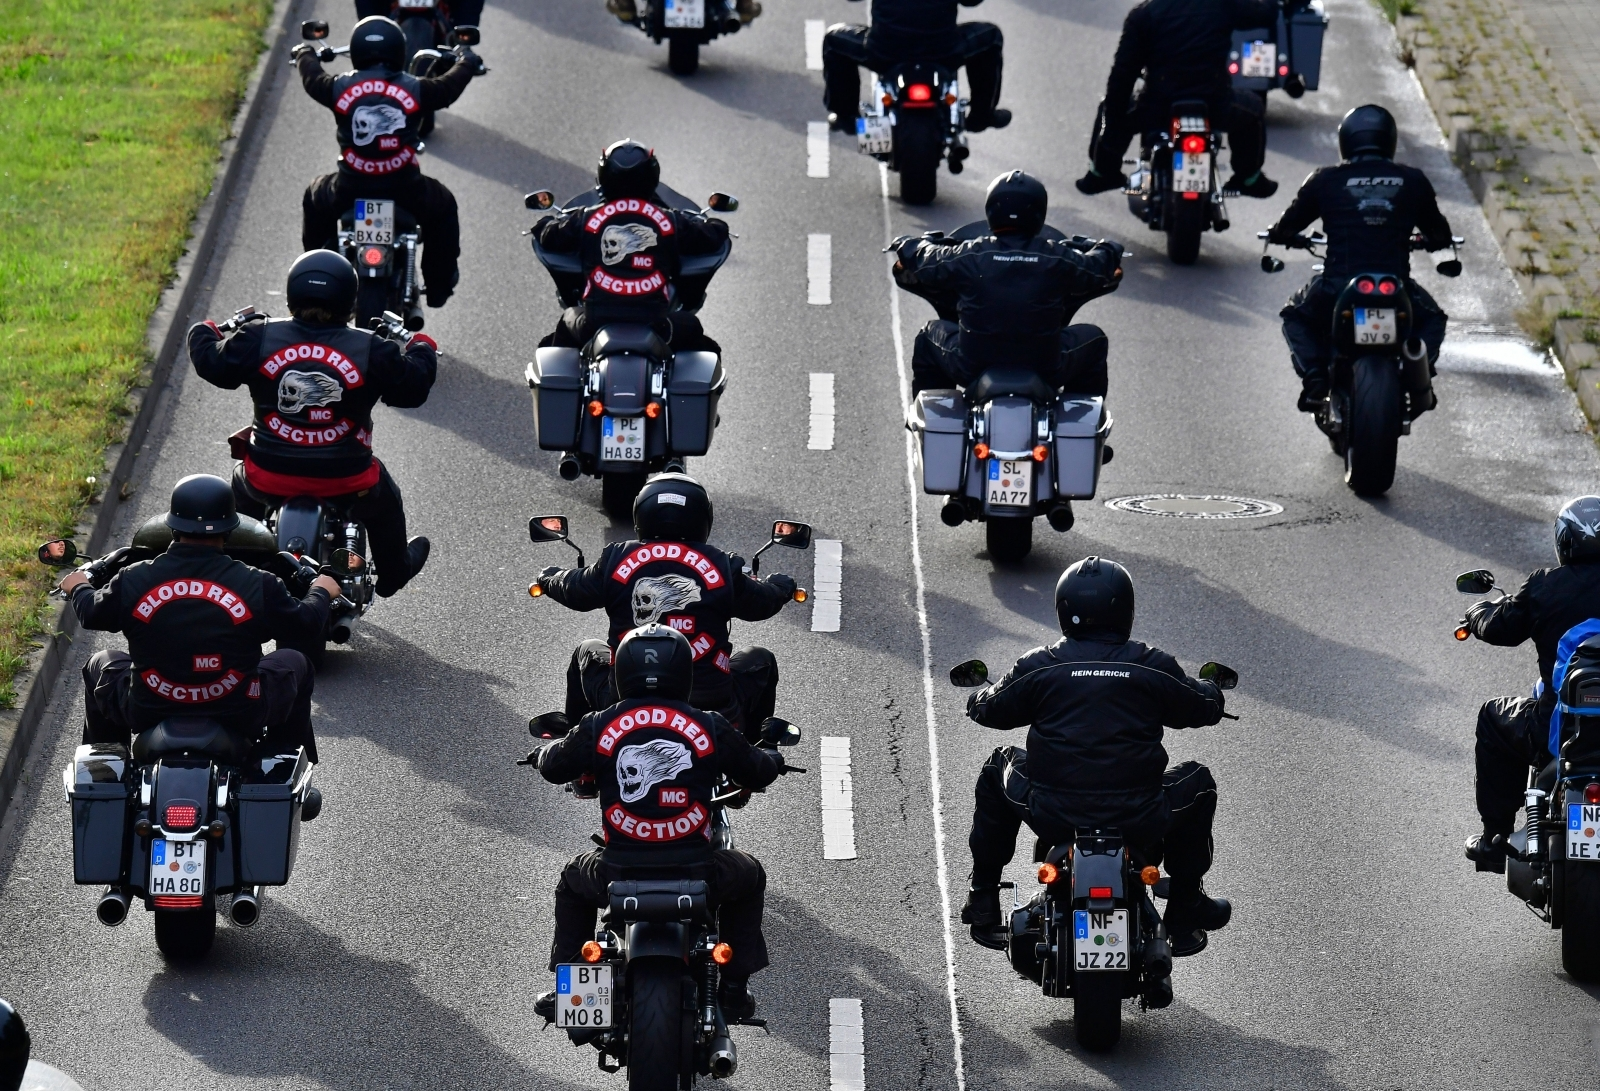 GERMANY-HELLS-ANGELS-DEMONSTRATION